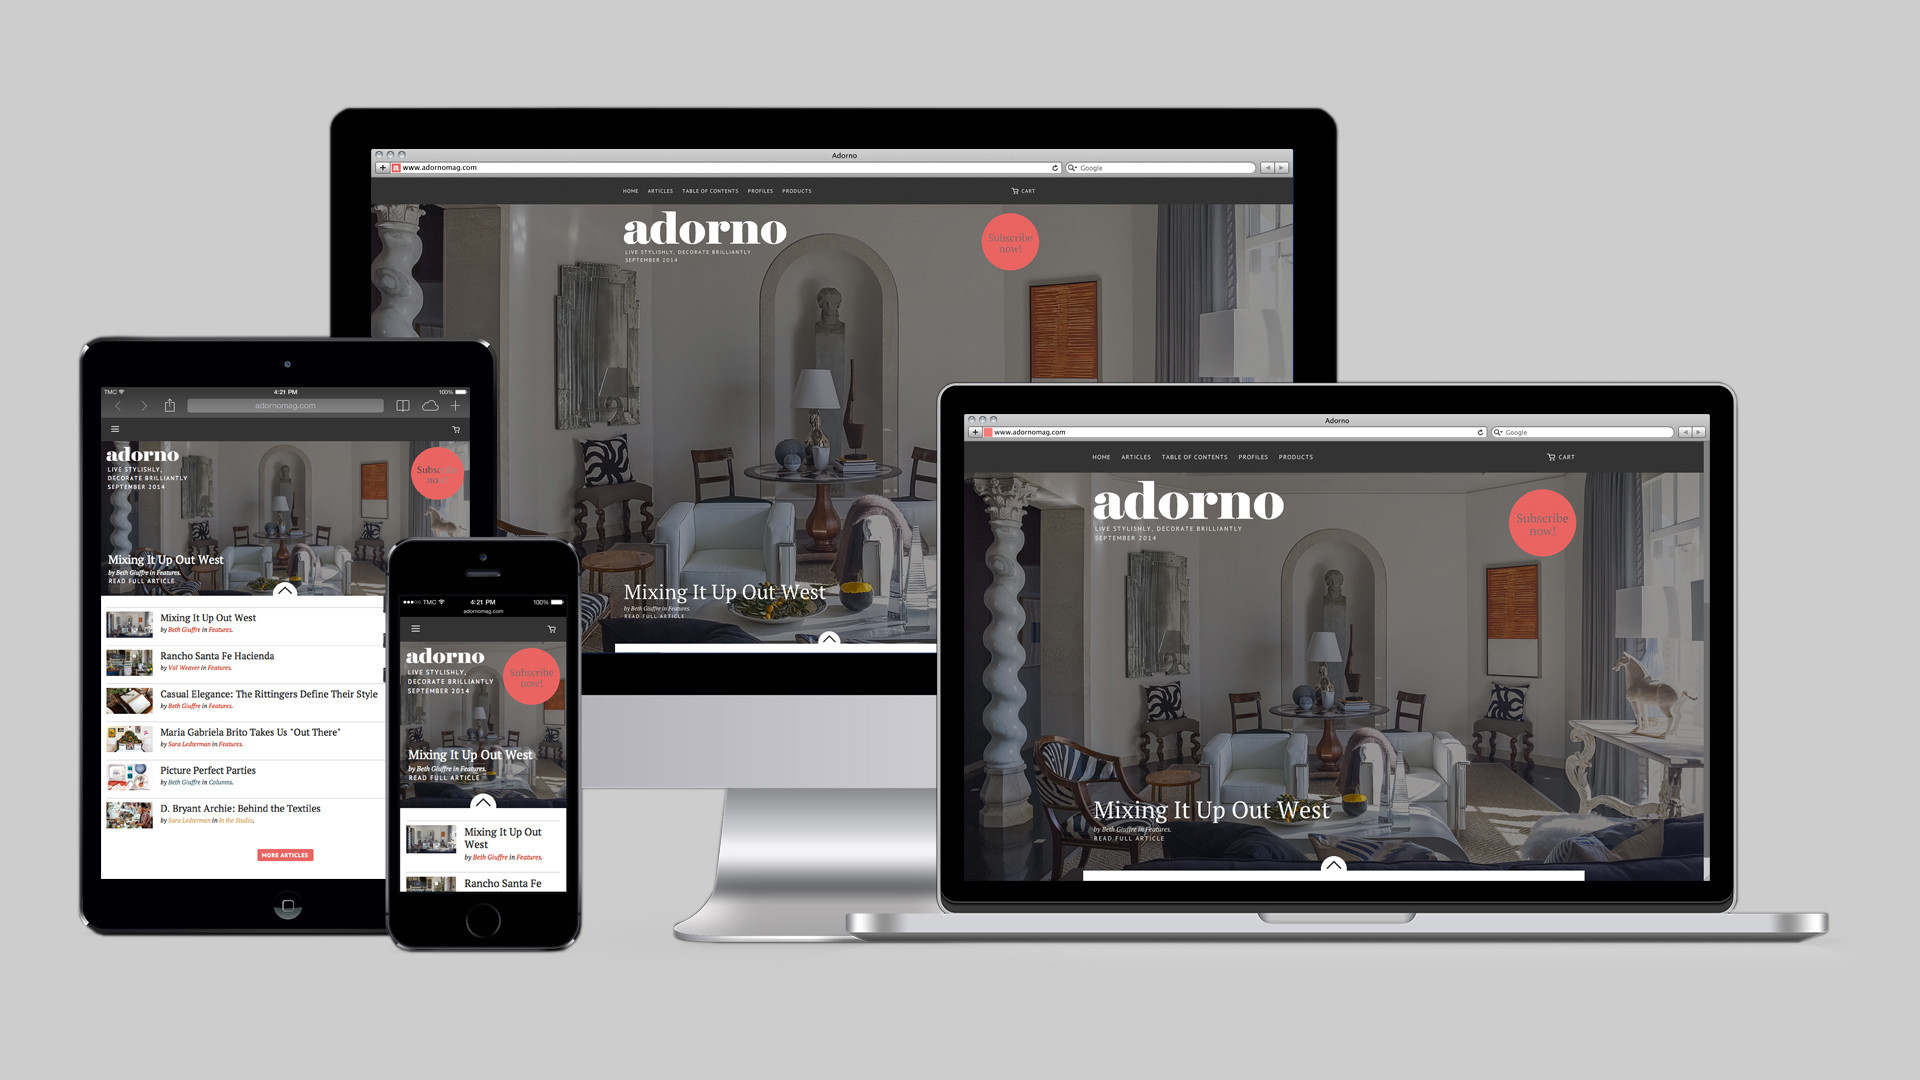 adorno-overview,huge.1510708180